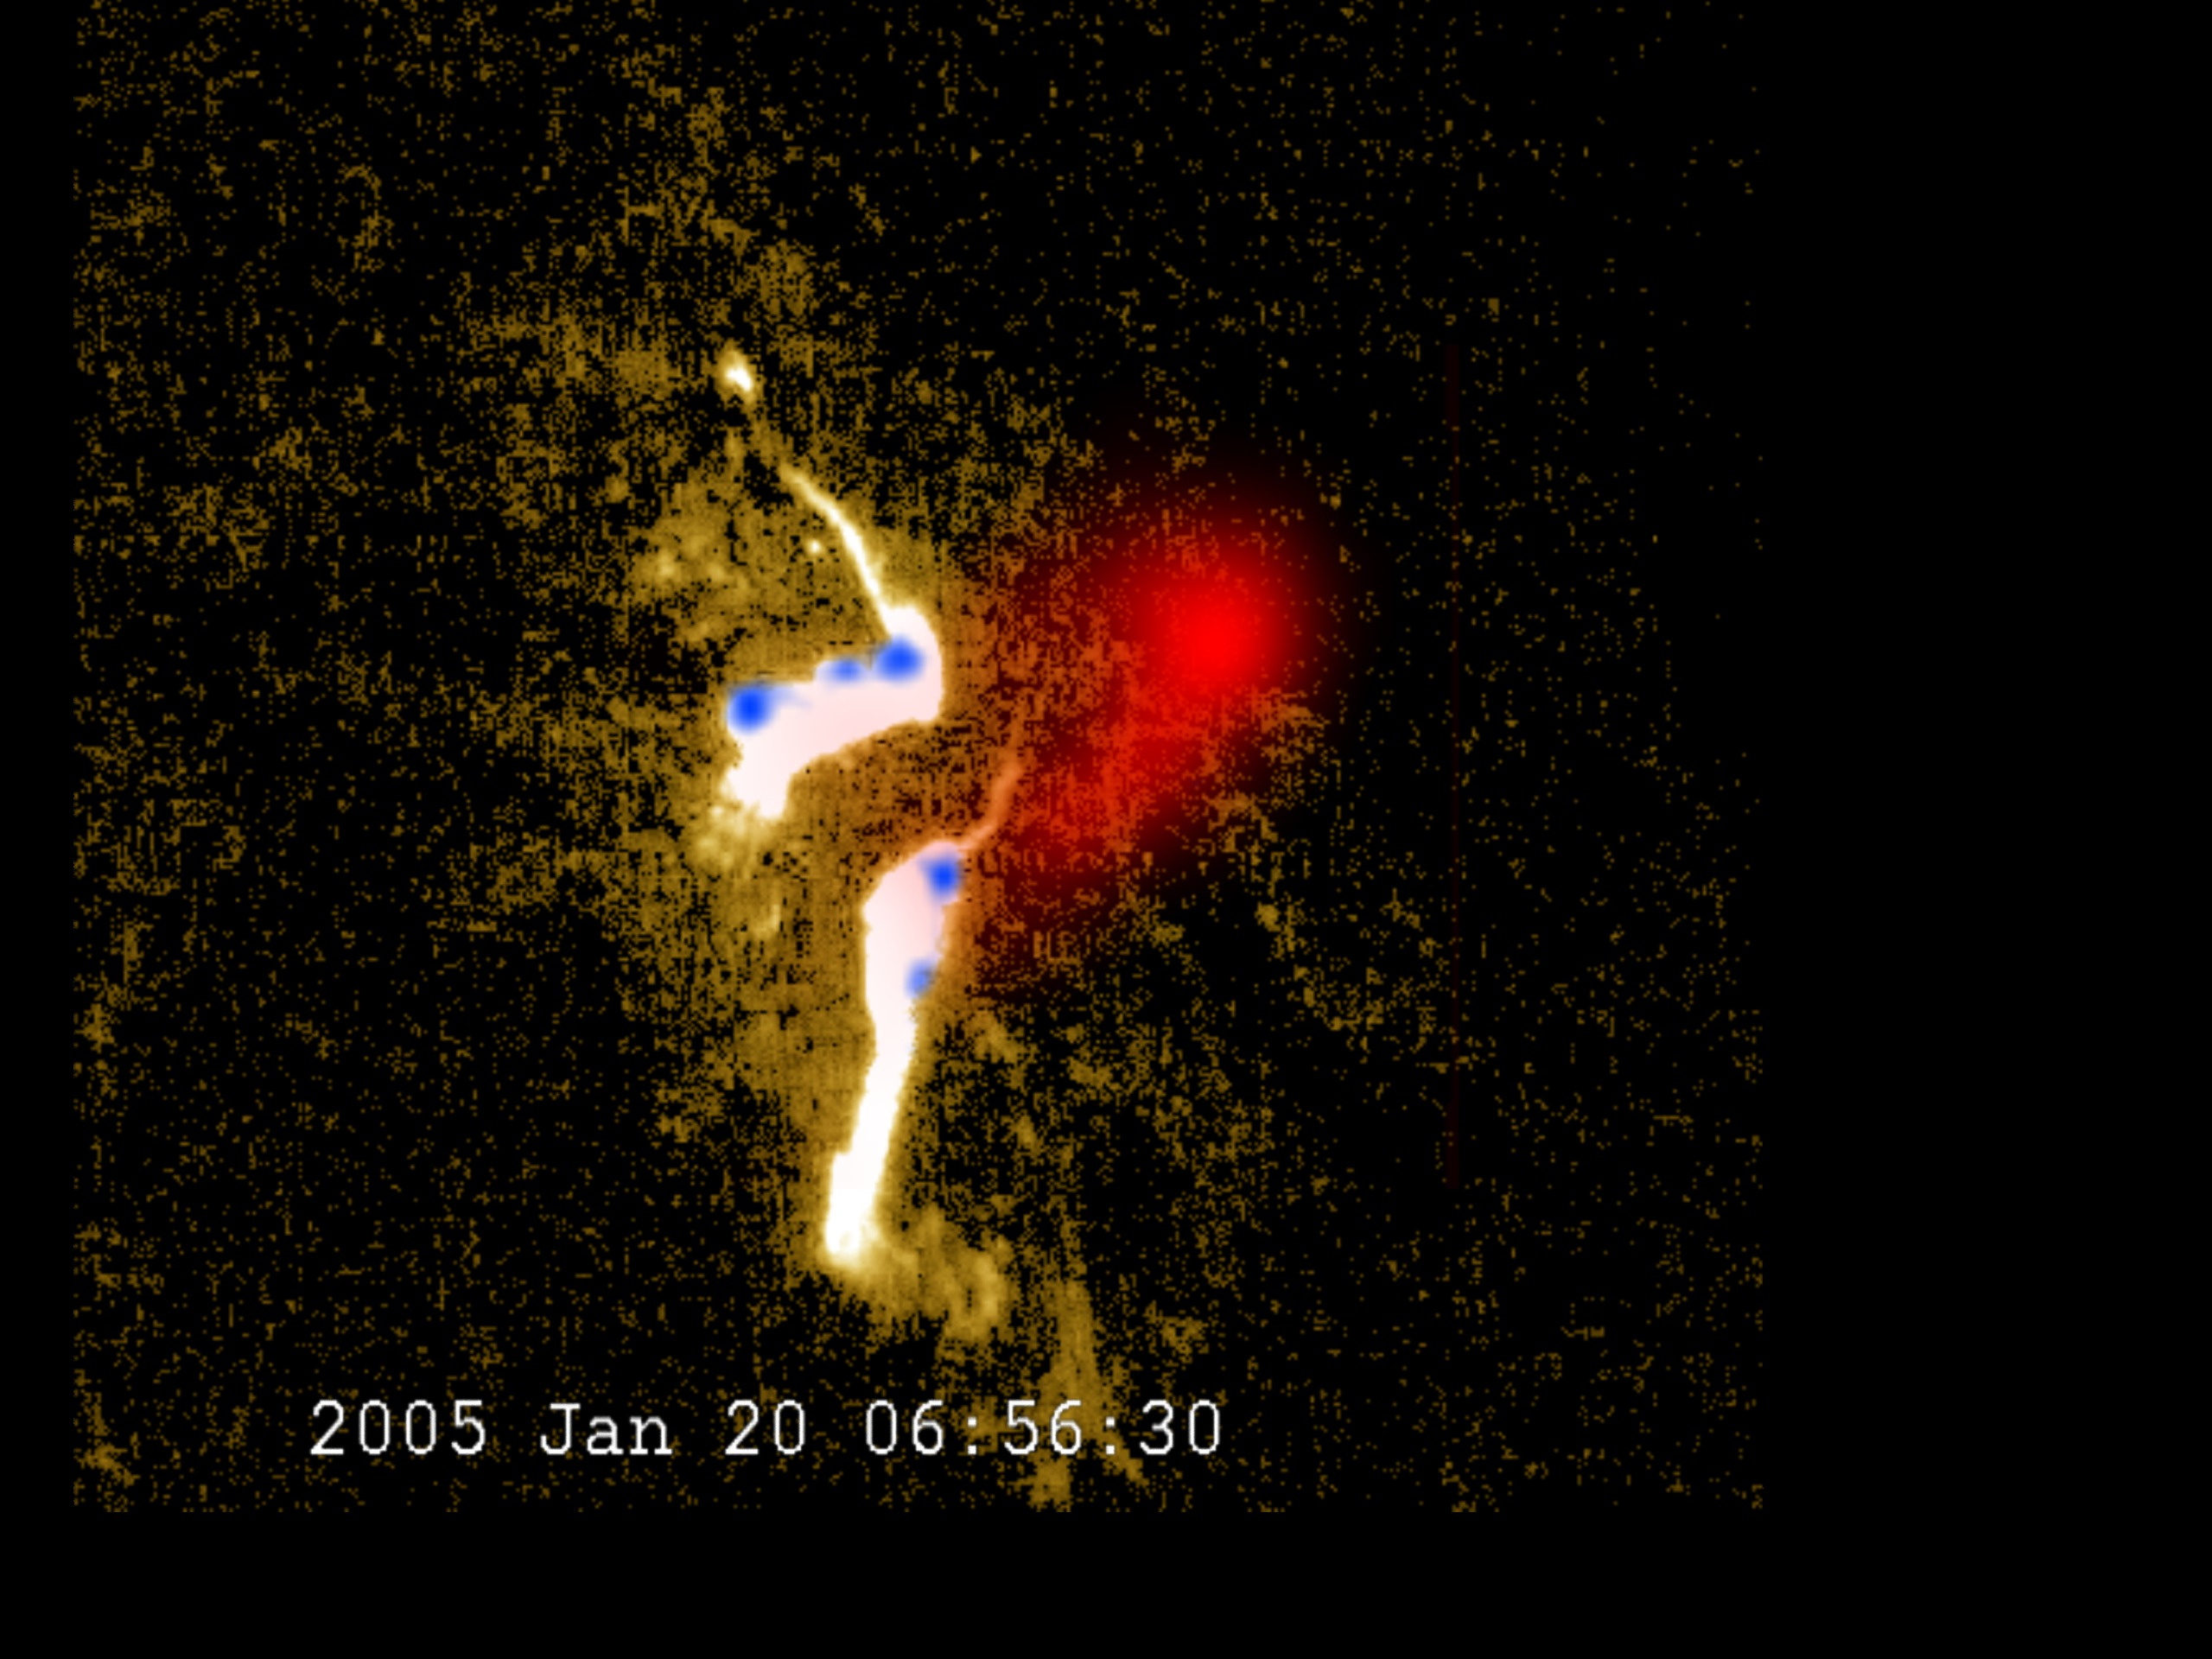 The Sun Just Erupted The Biggest Solar Flare in 12 Years ...  |2005 Solar Flare